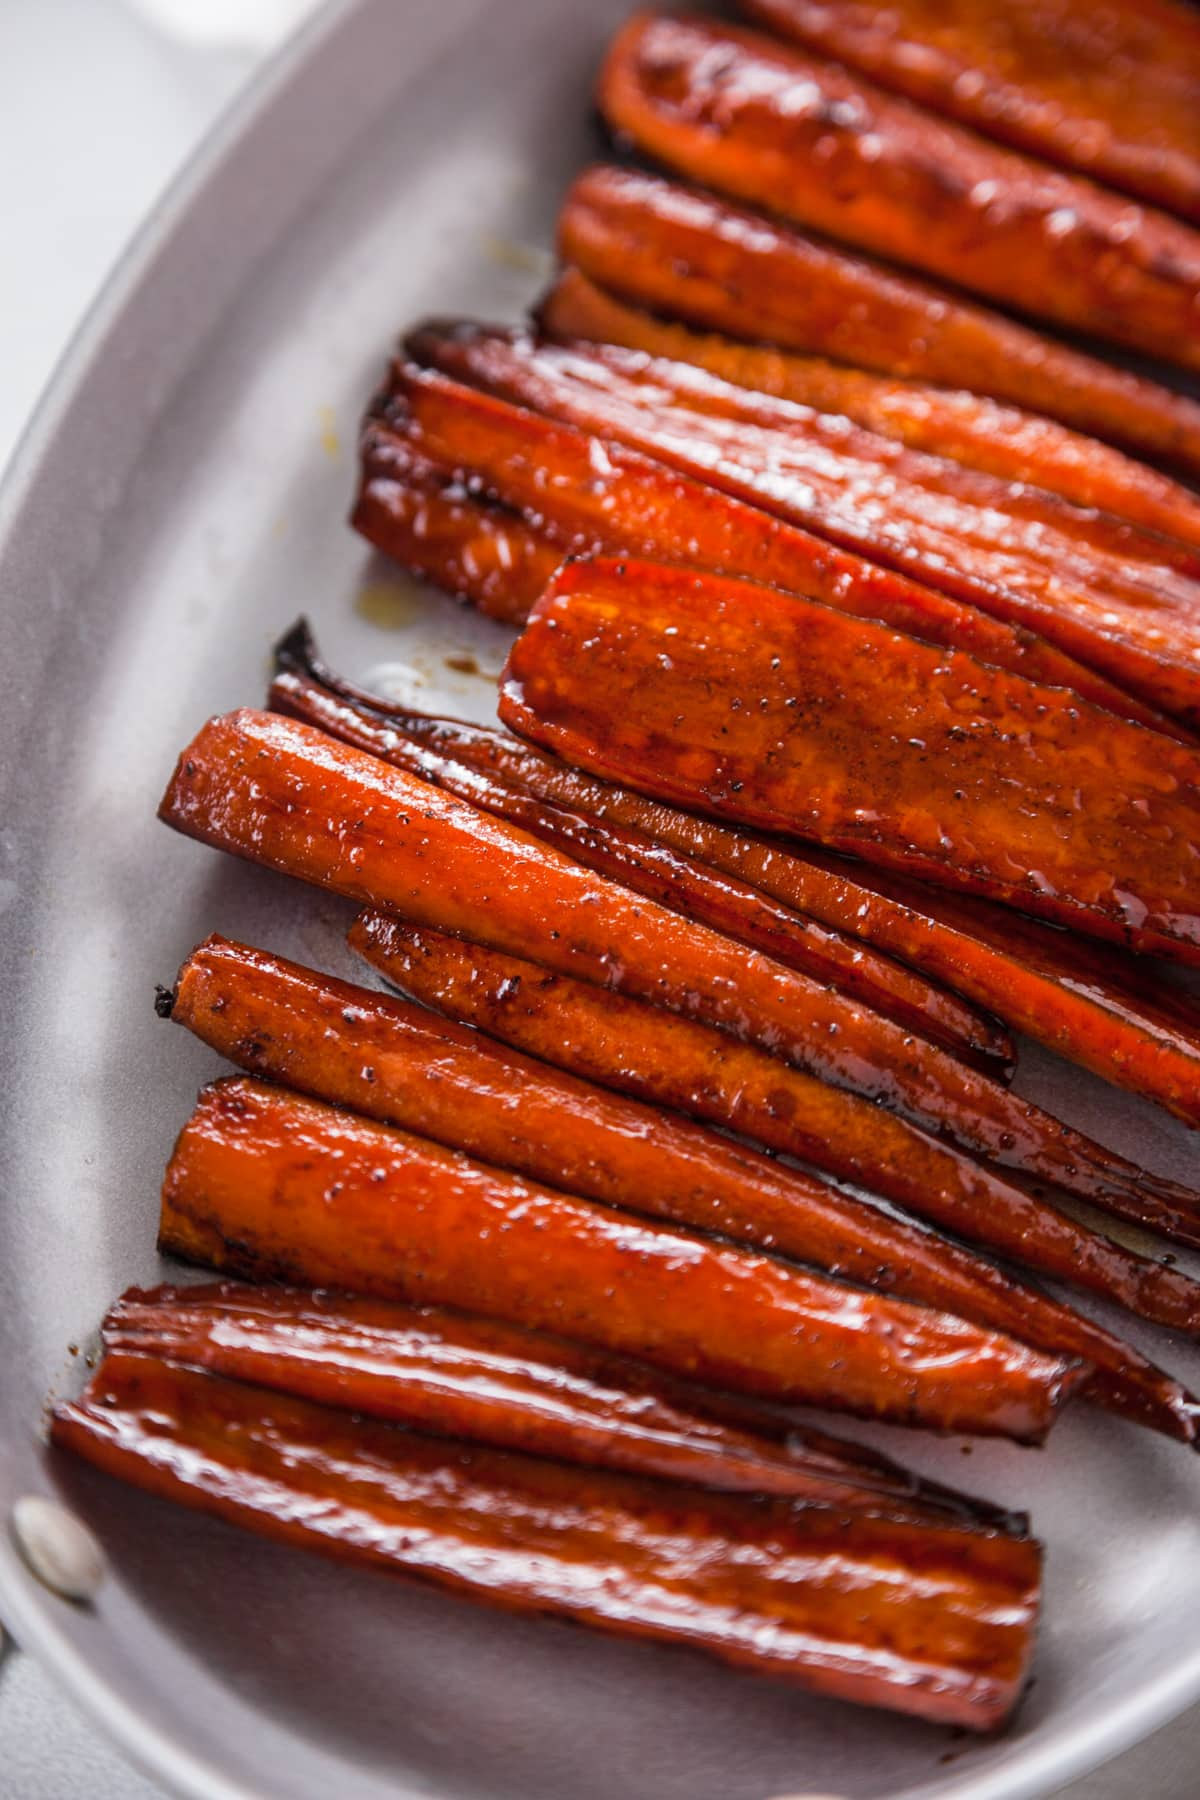 a close up shot of Balsamic Glazed Roasted Carrots.